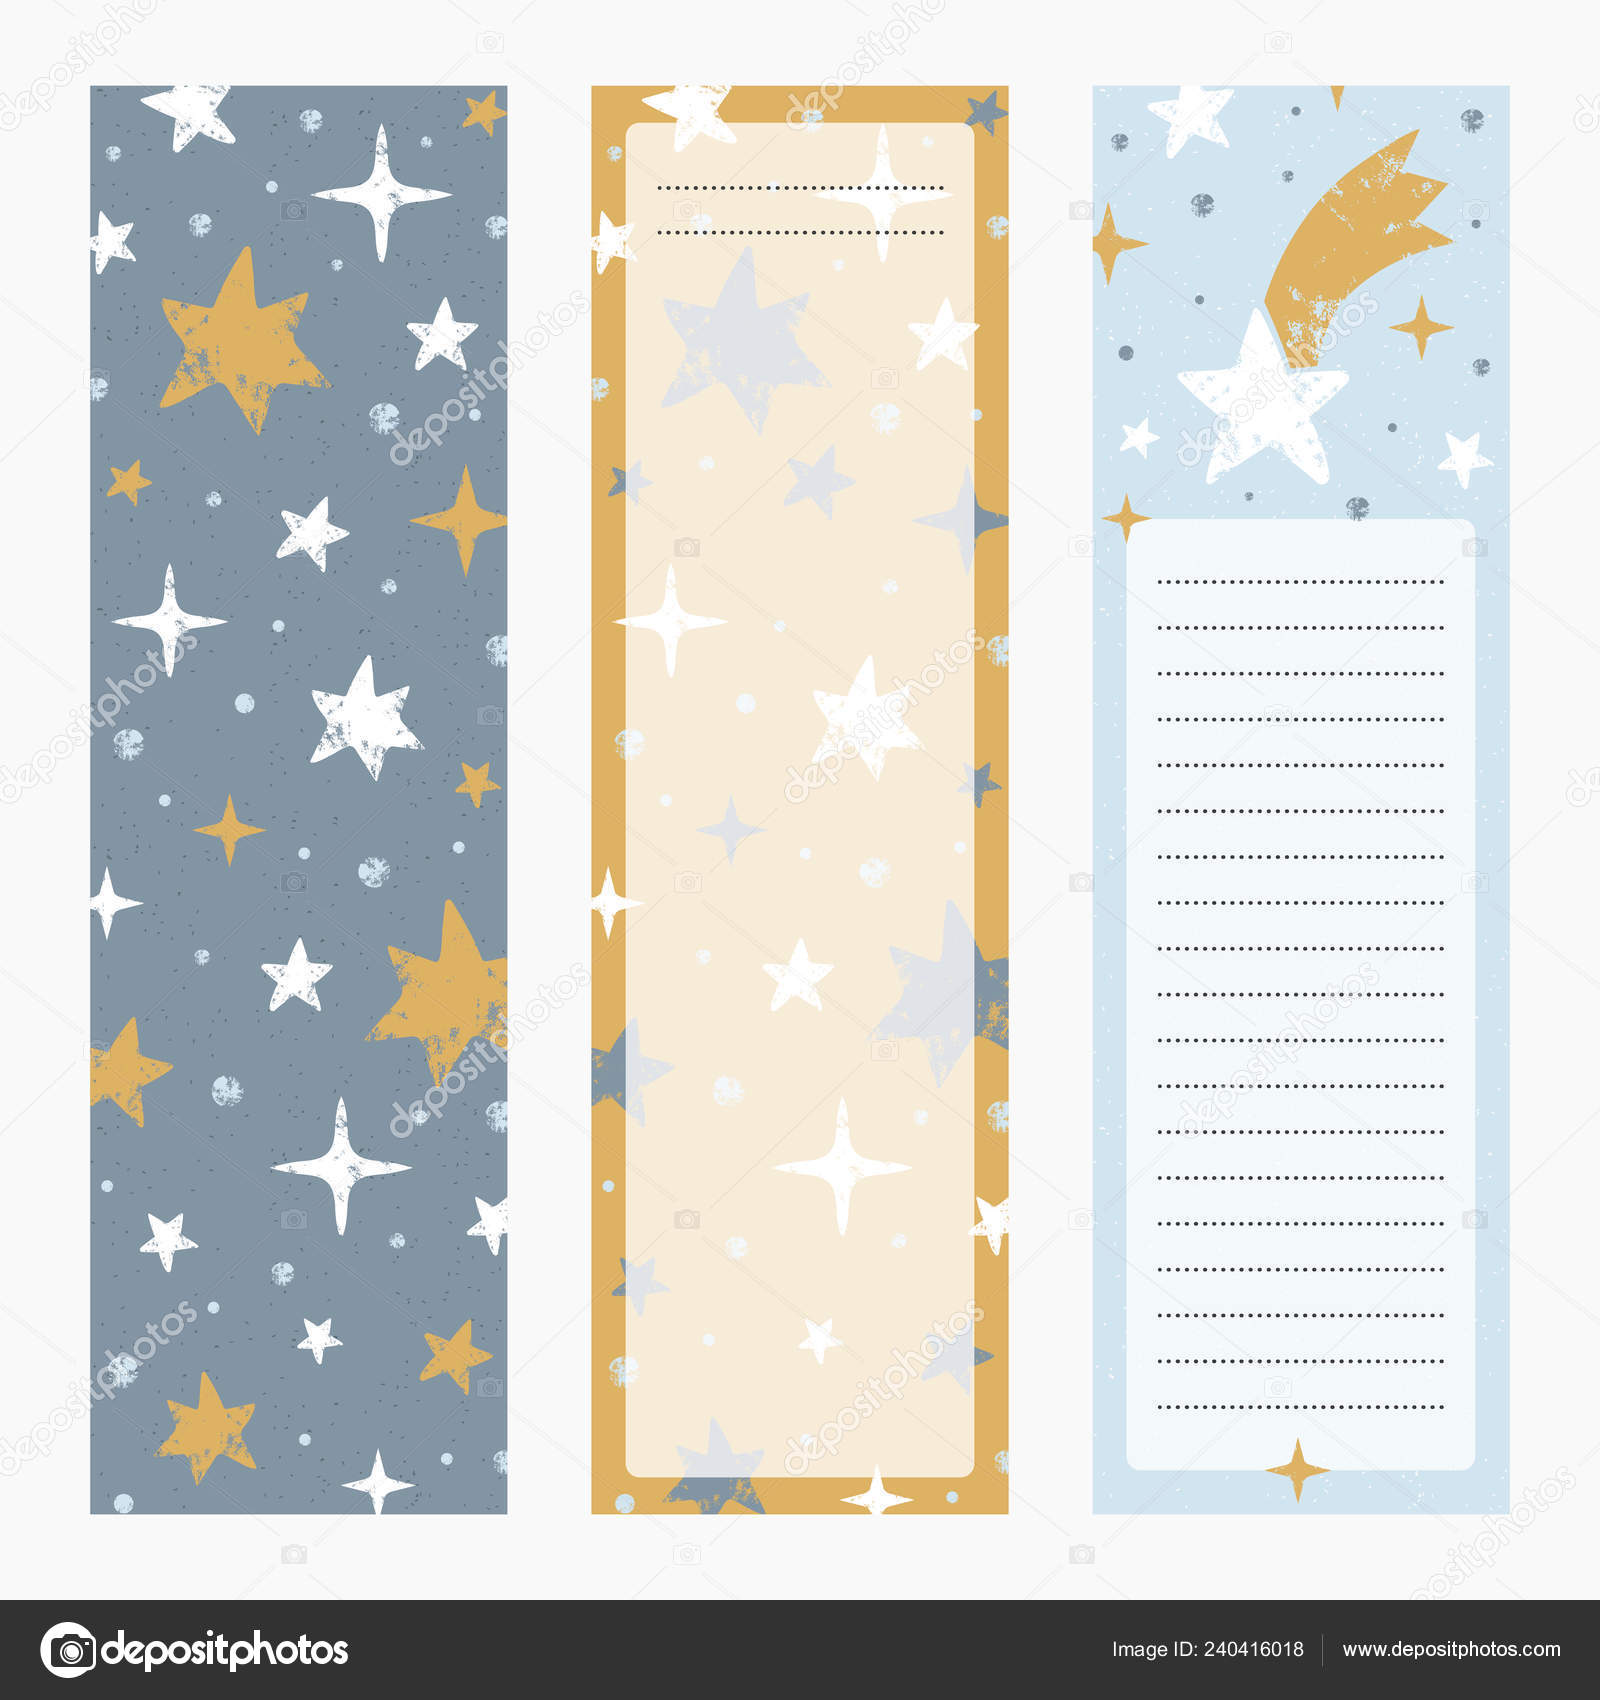 picture relating to Stamp Printable known as Stamp template printable Printable Bookmarks Banners